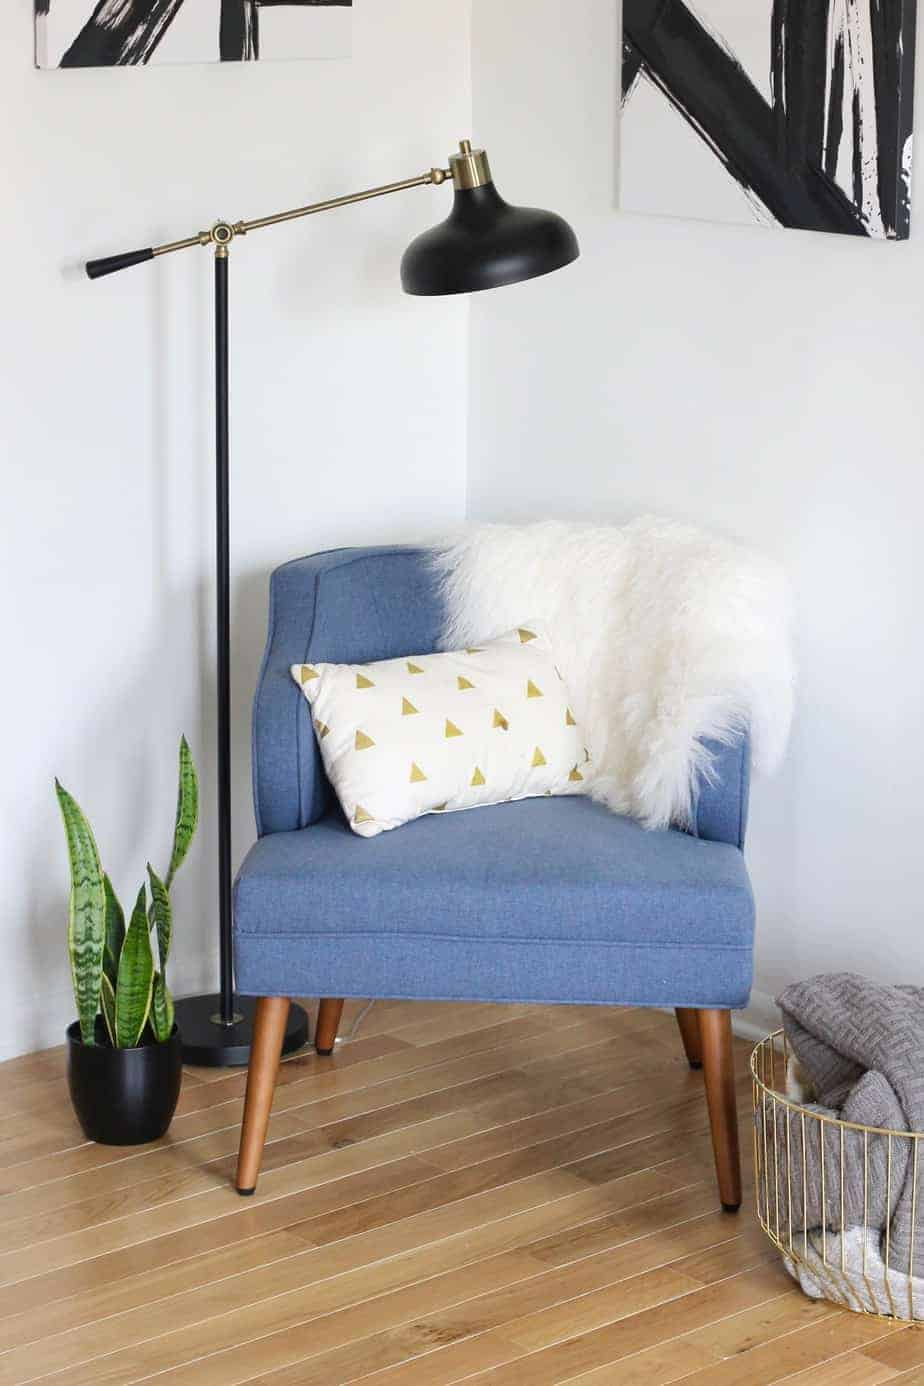 Styling small spaces: mid century modern